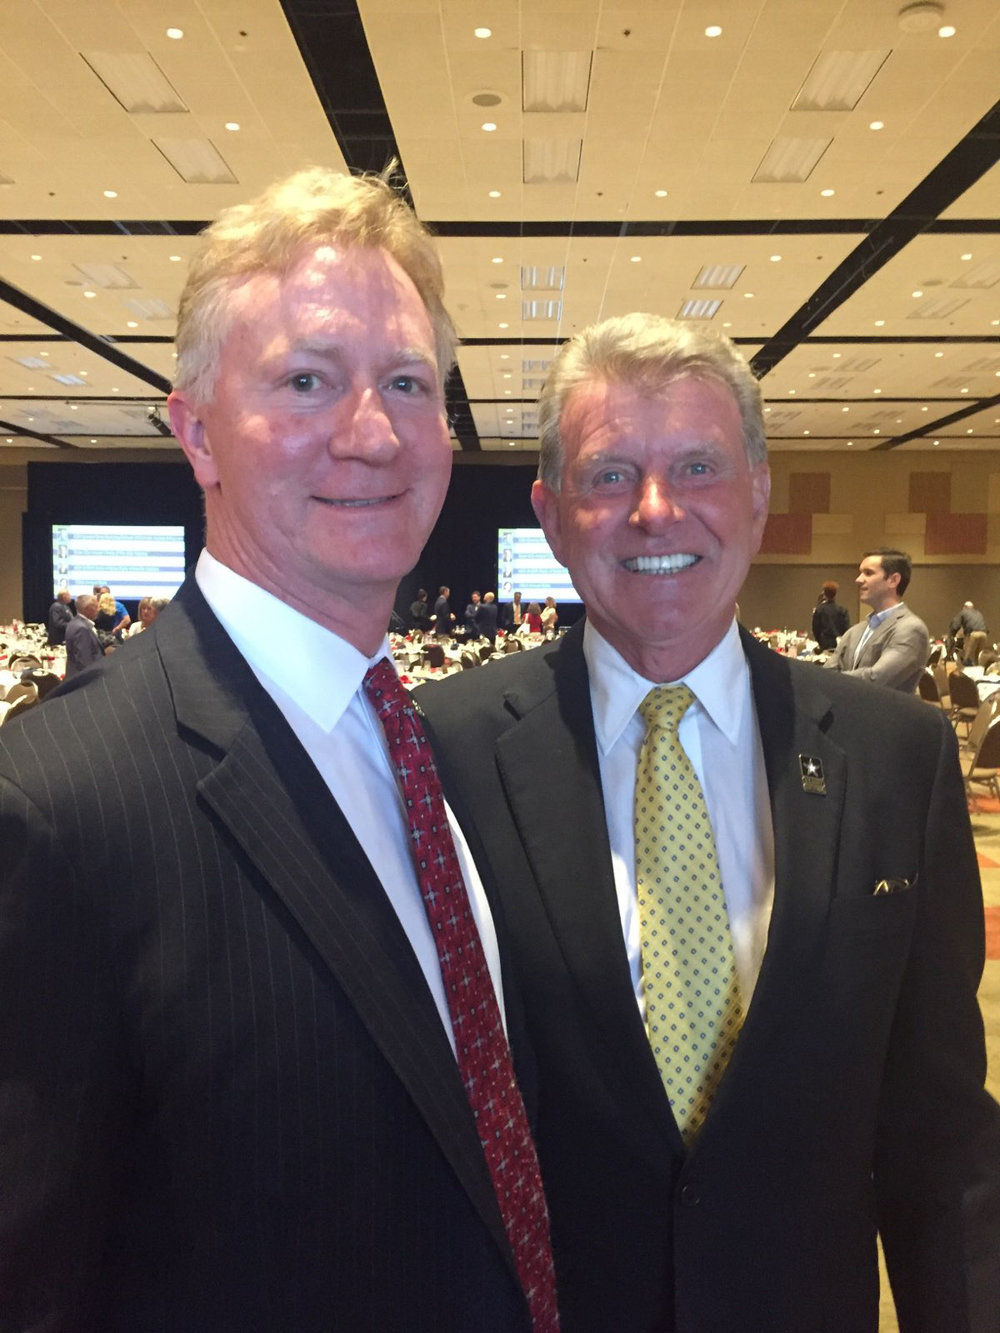 Rodney Reider with then Idaho Governor Butch Otter